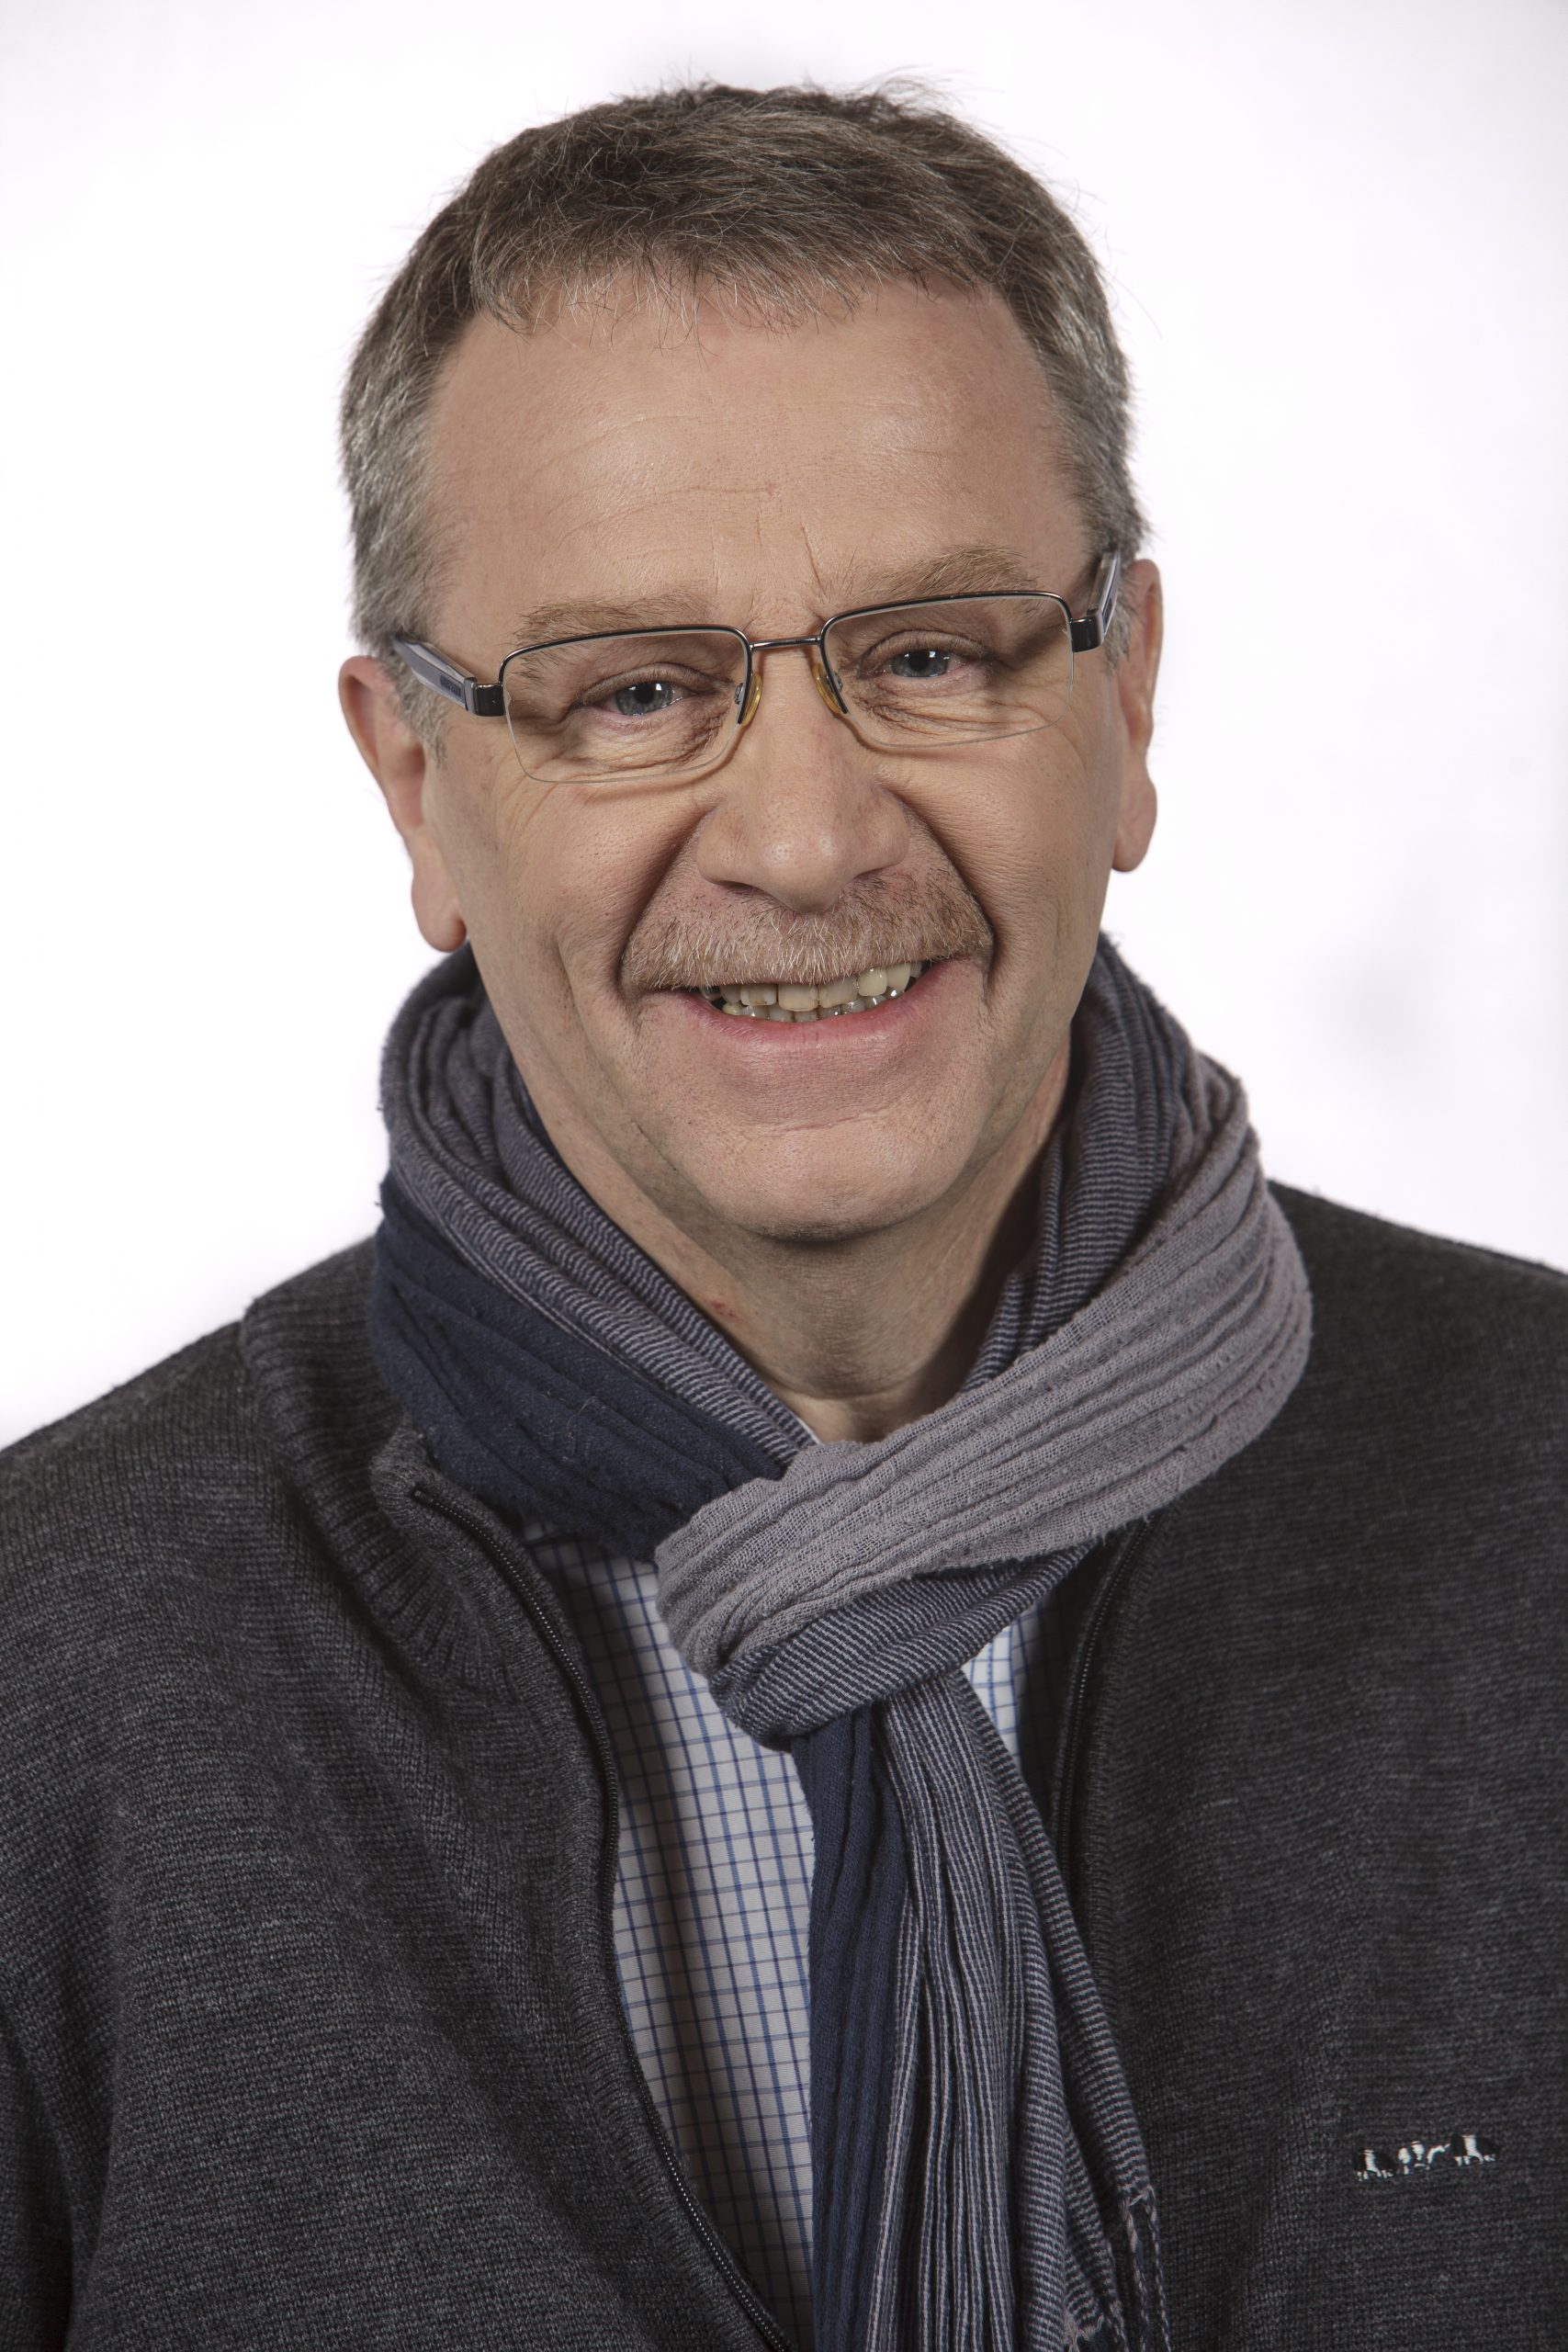 Paul-André Simon